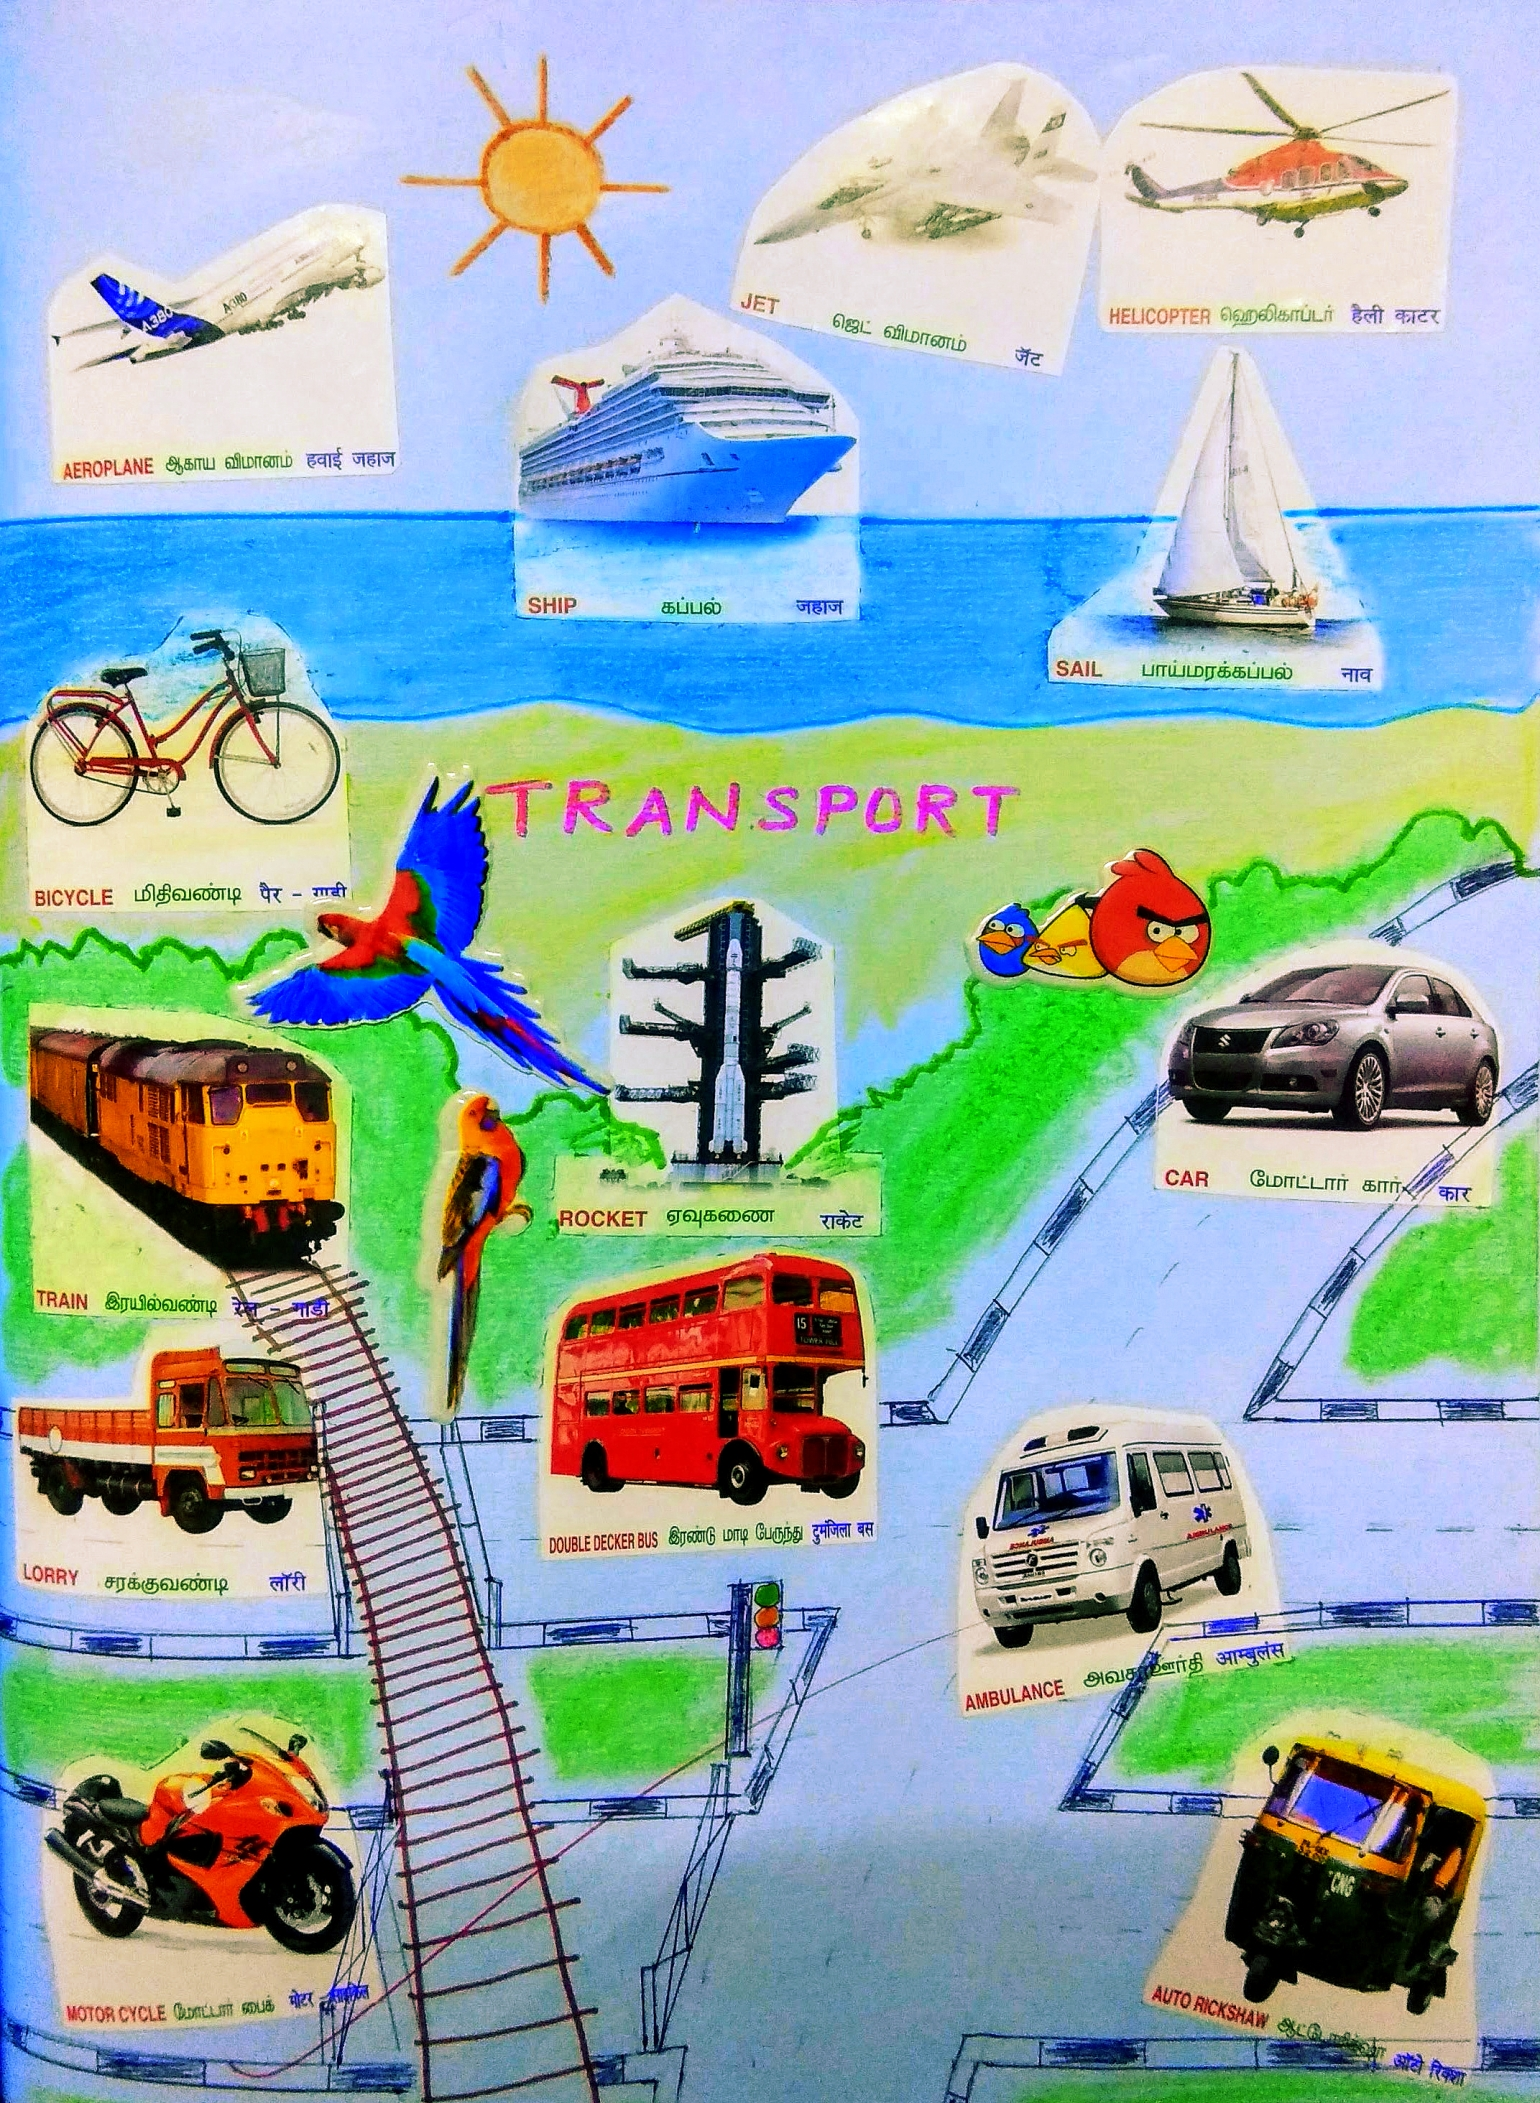 Transit To Dreamland - A picture of transportation and vehicles